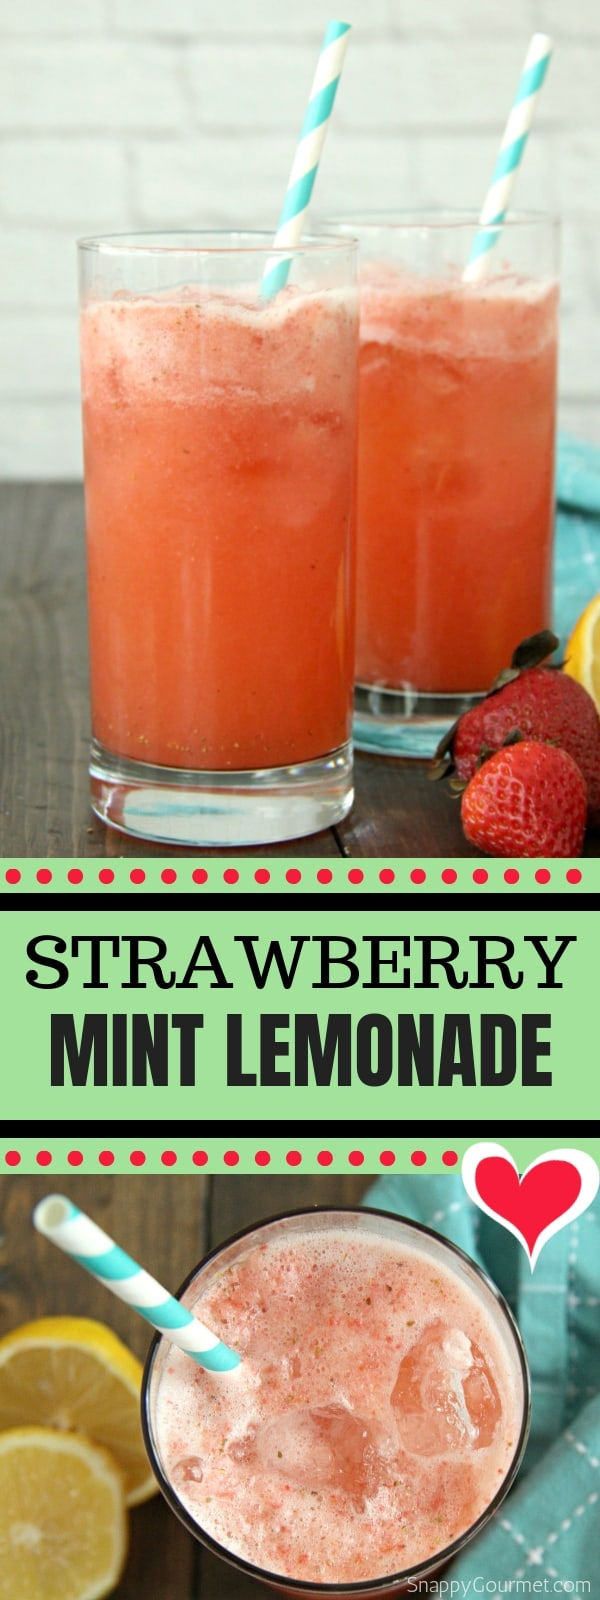 Strawberry Mint Lemonade photo collage